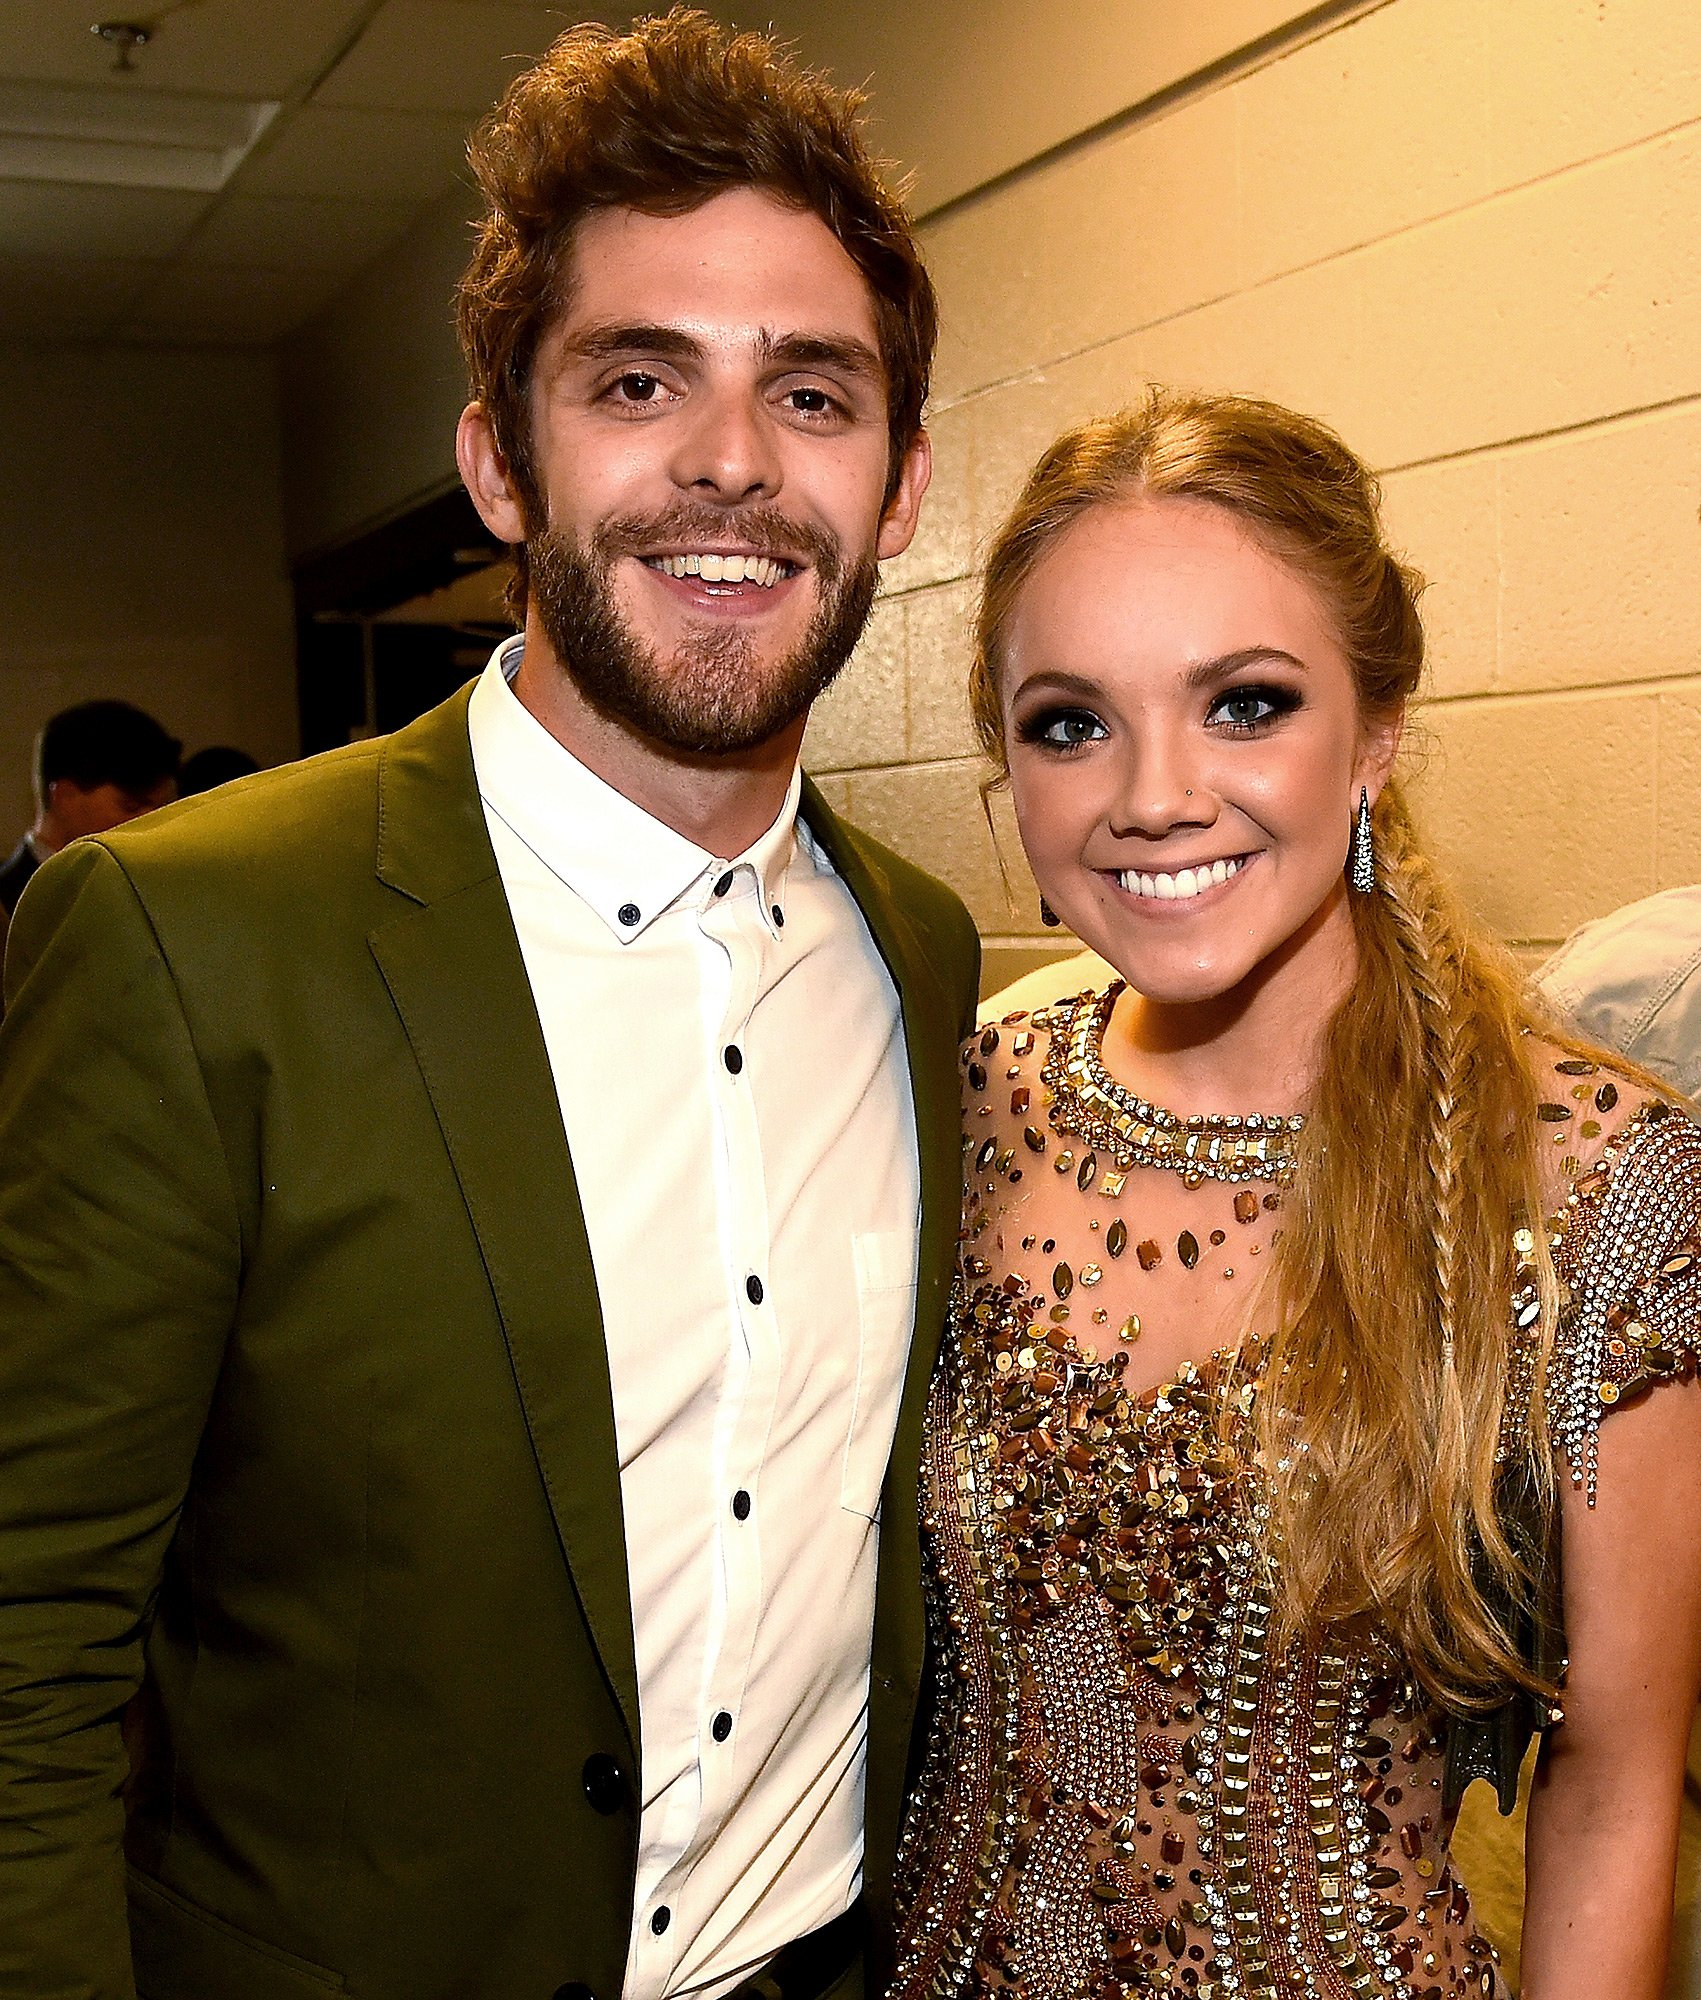 Thomas Rhett Jokes His 'Sole Job' on Danielle Bradbery Duet Was 'Trying Not to Sound Terrible'